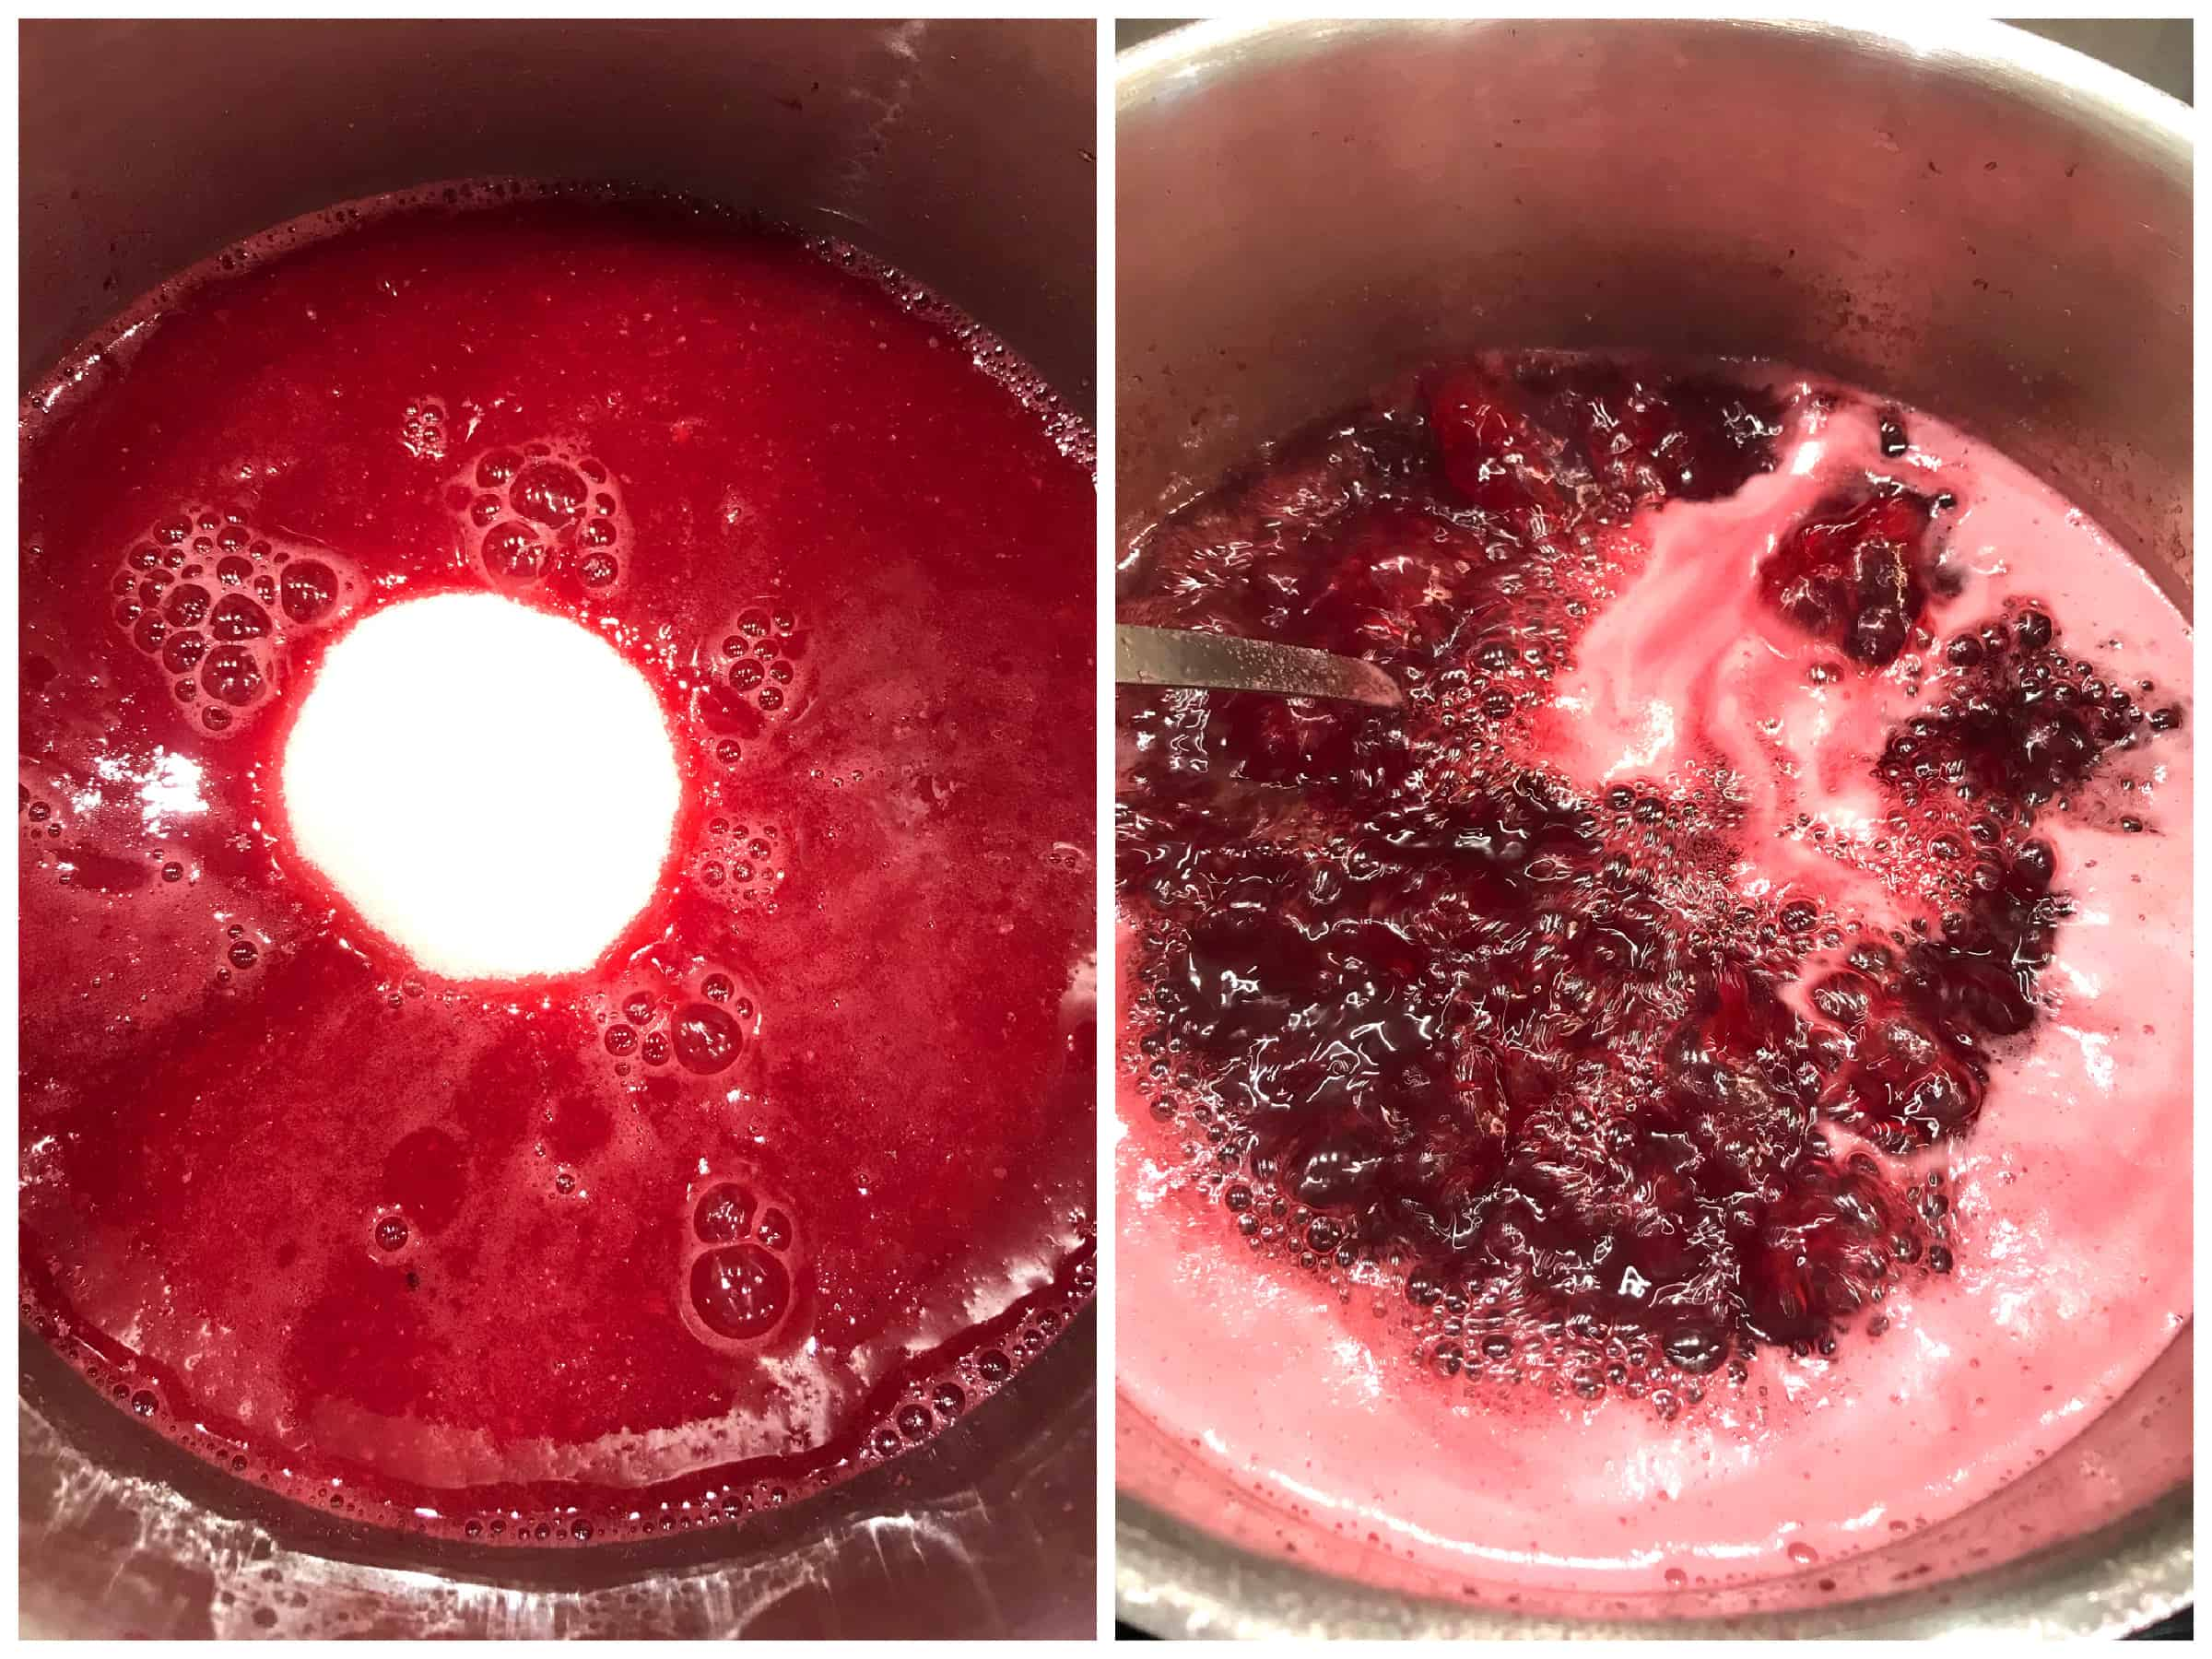 red currant jelly recipe homemade without pectin